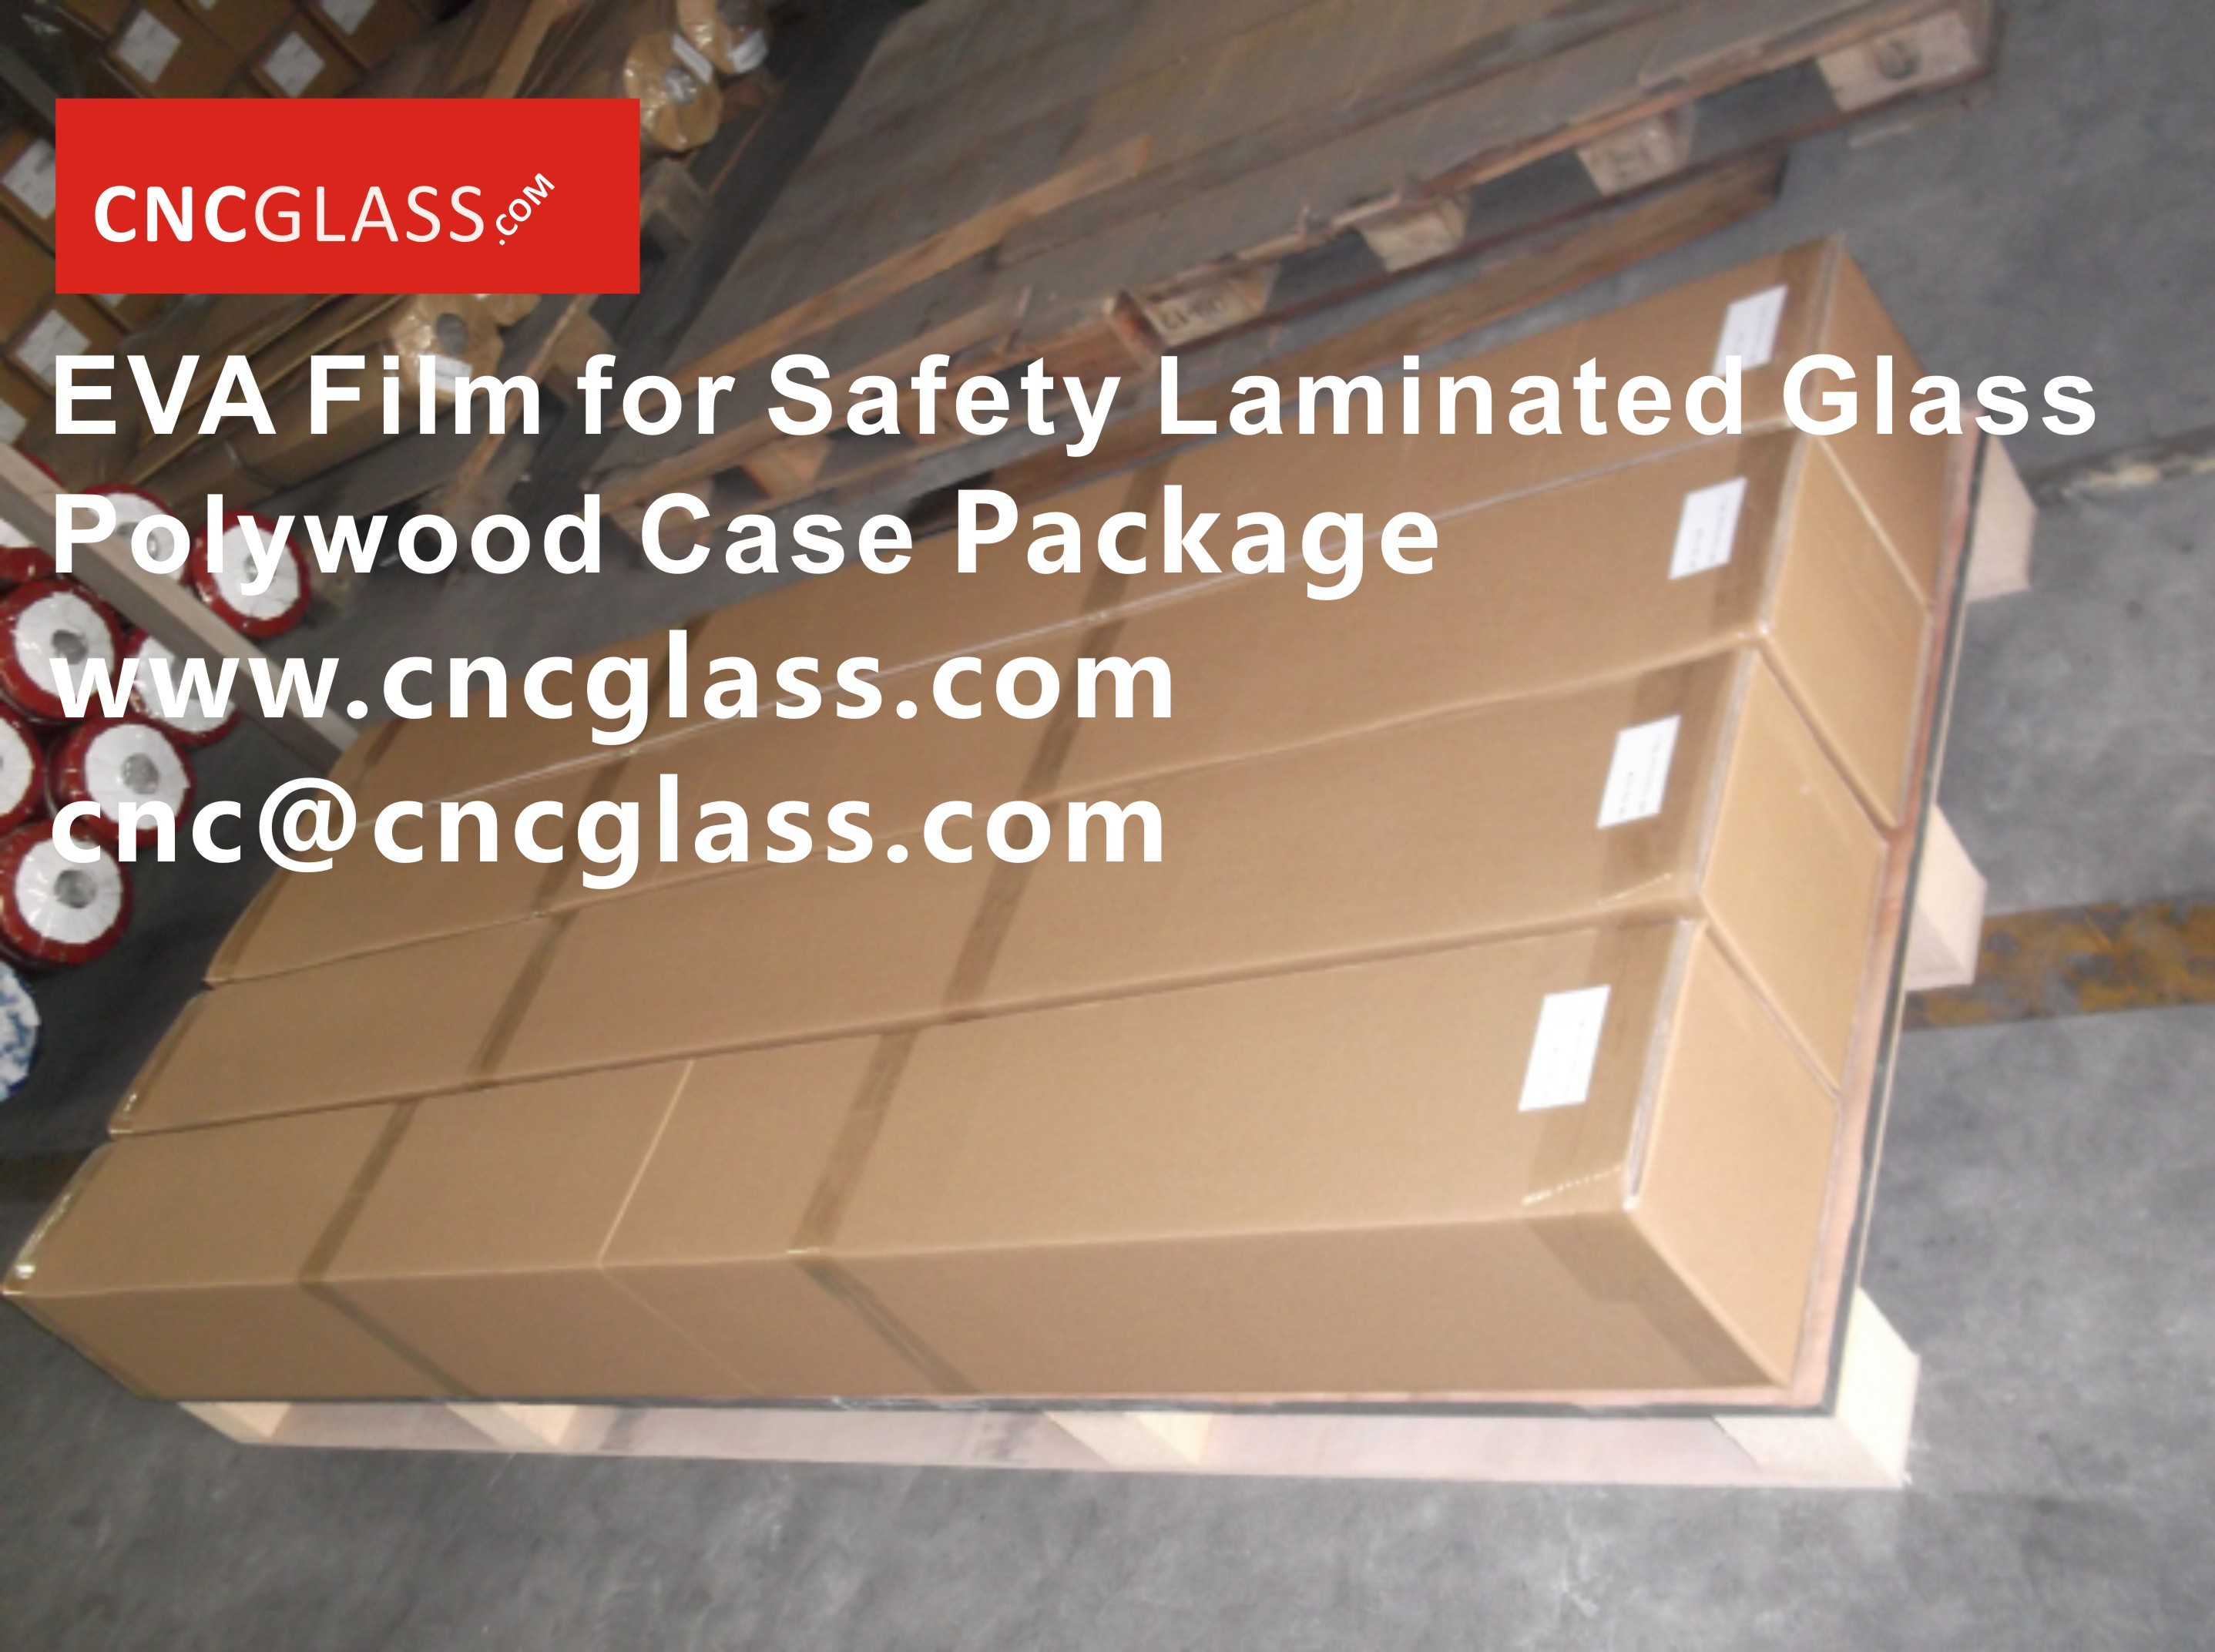 091603EVA Film for Safety Glass Package